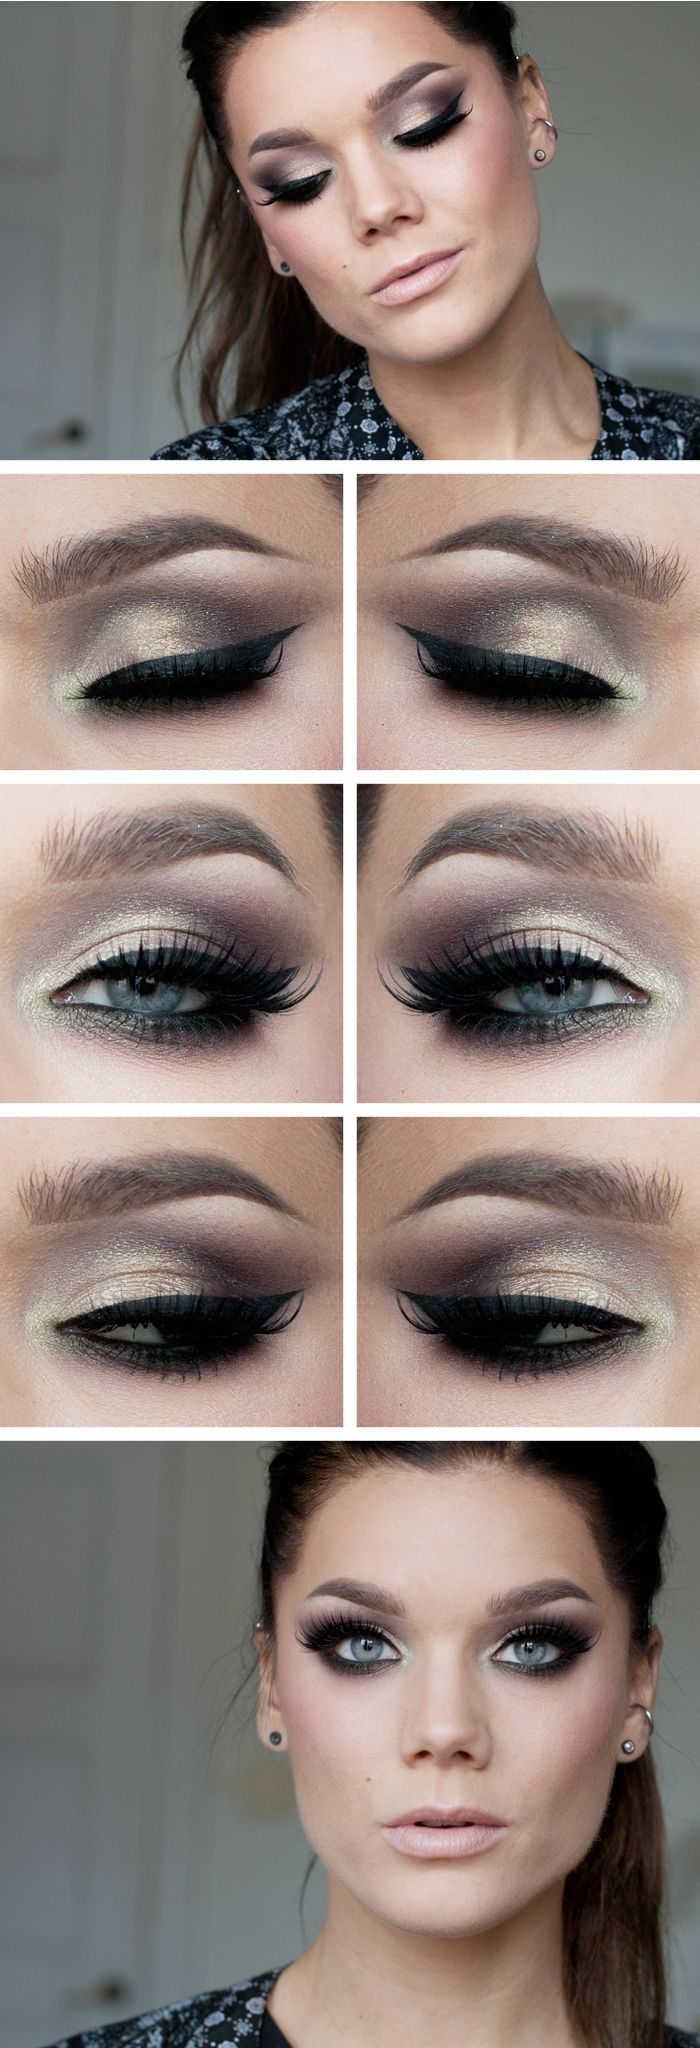 "Today's Look : ""Smokey Gold"" -Linda Hallberg (The name says it all... a smoked out gold look, very versatile... featuring the NYX Eyeshadow palette C'est la vie) 10/07/13"